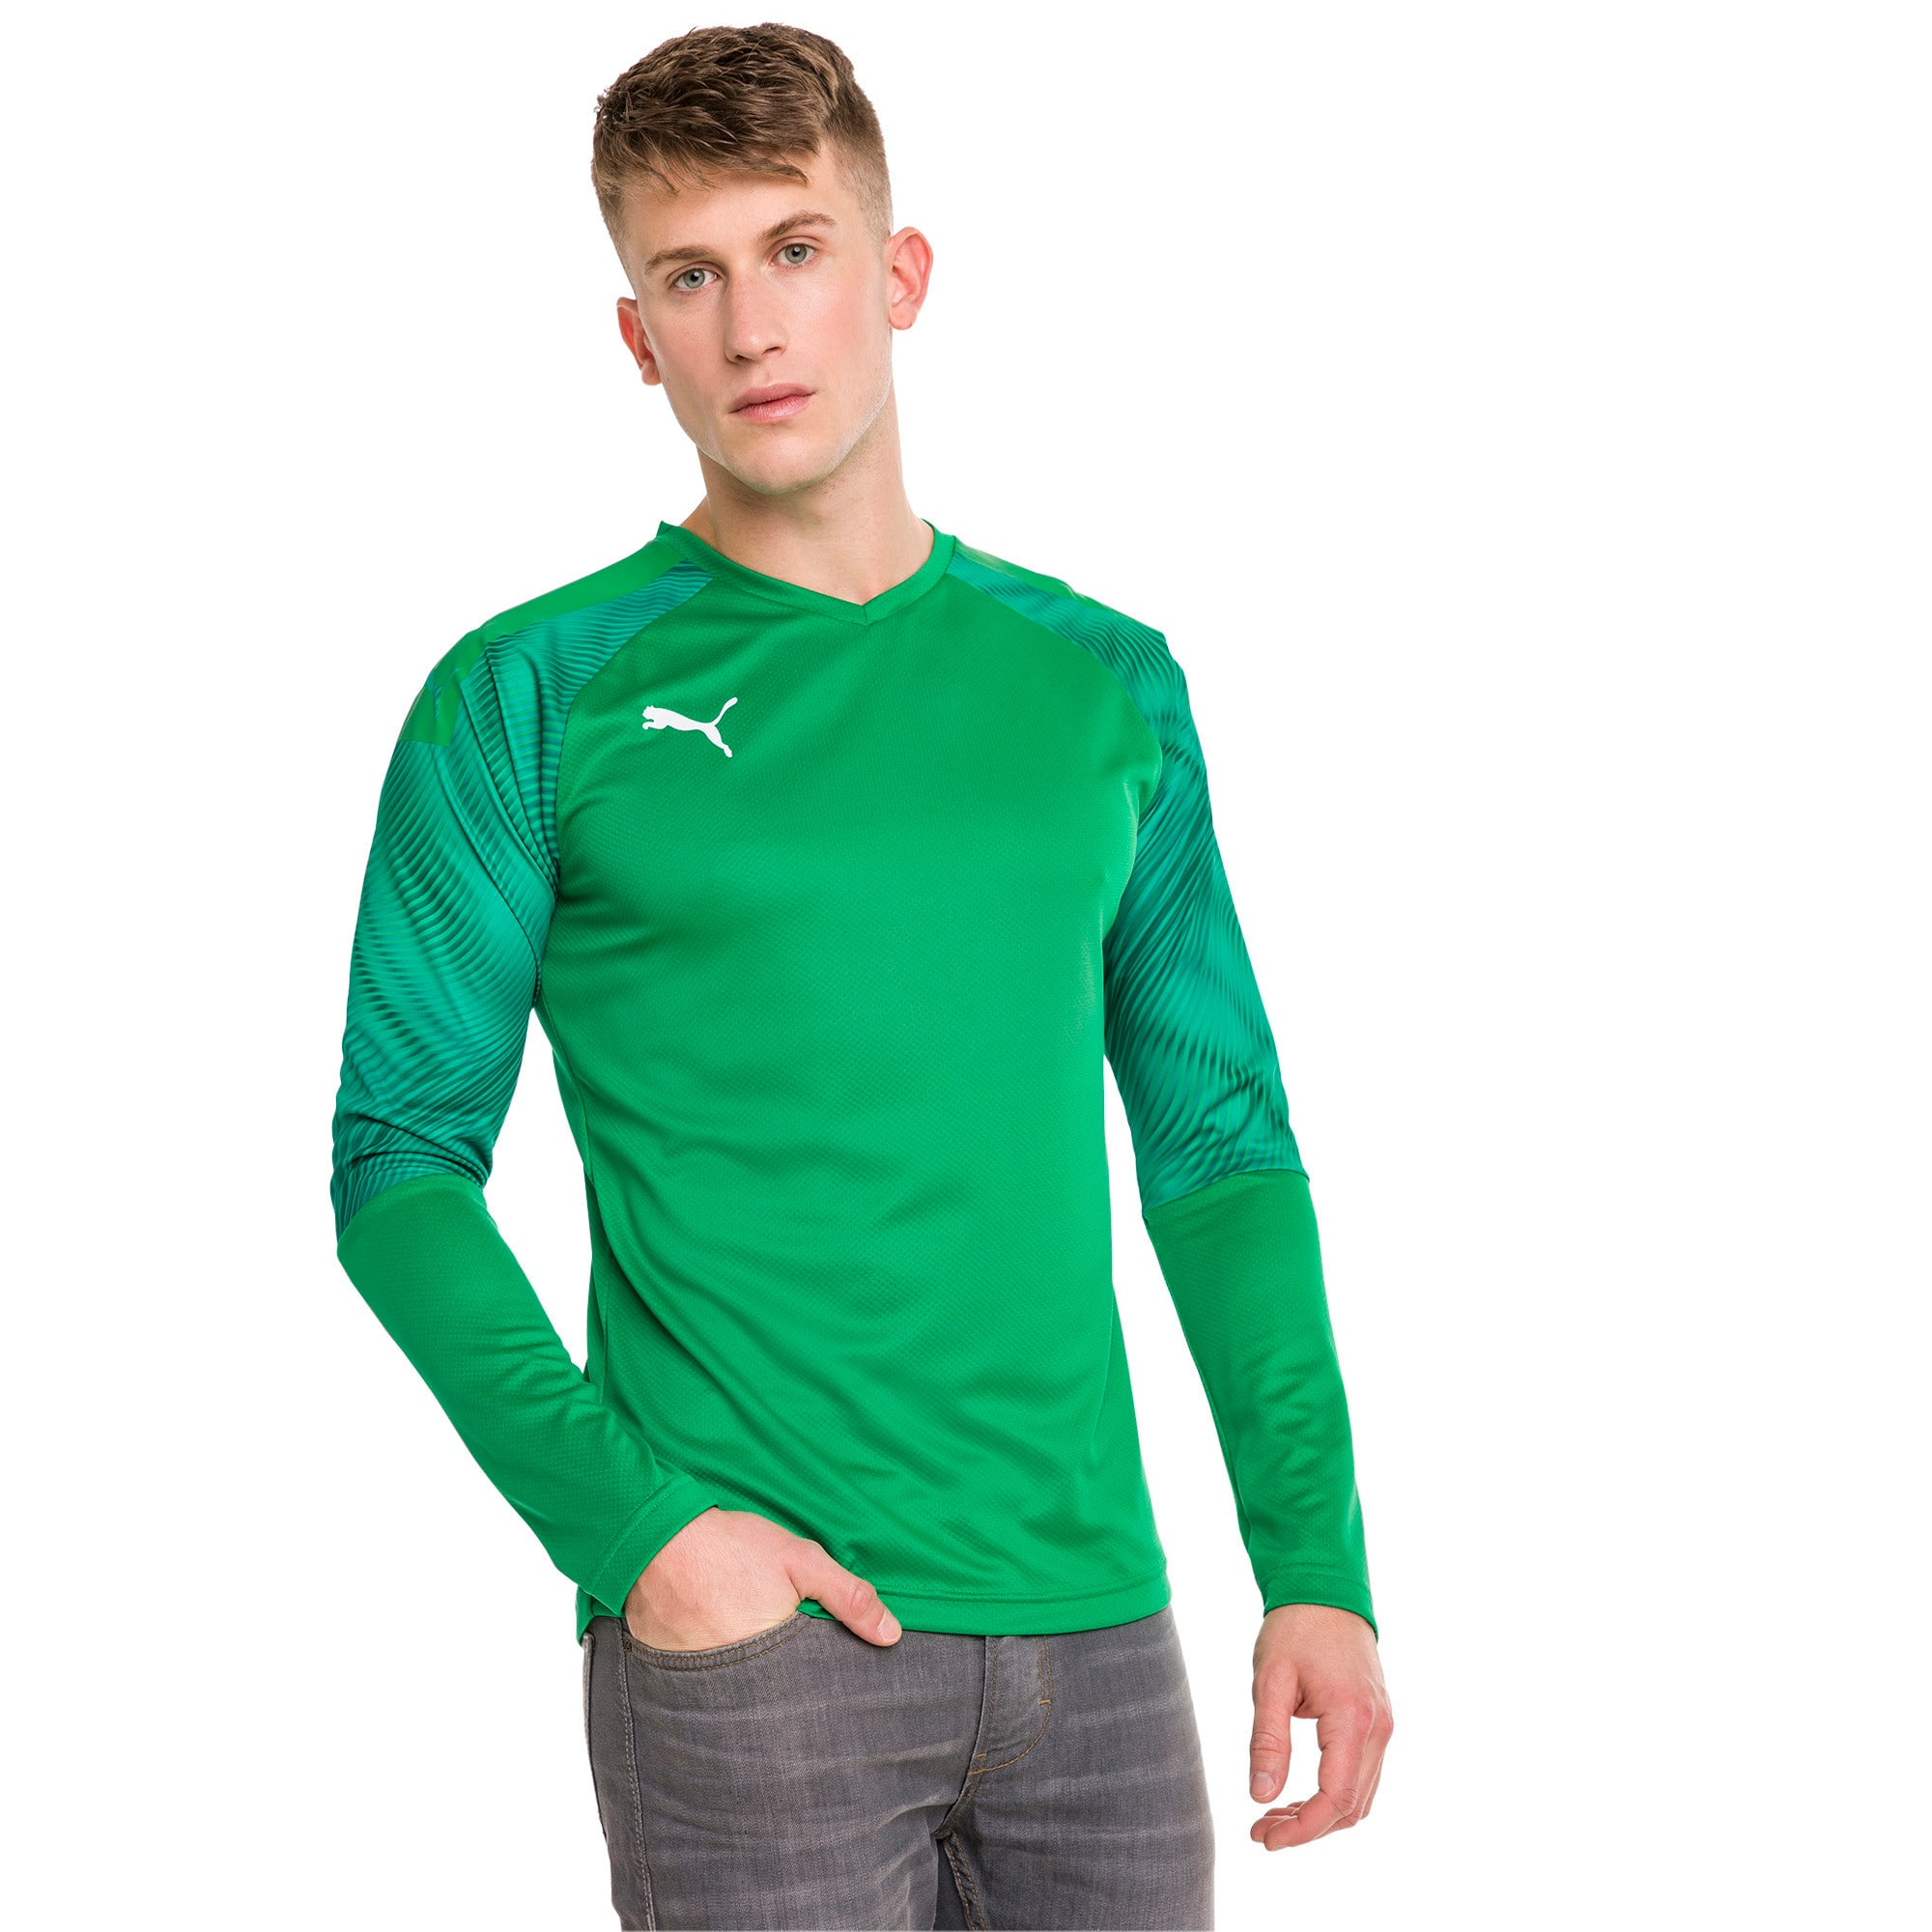 Thumbnail 1 of CUP Long Sleeve Men's Goalkeeper Jersey, Bright Green-Prism Violet, medium